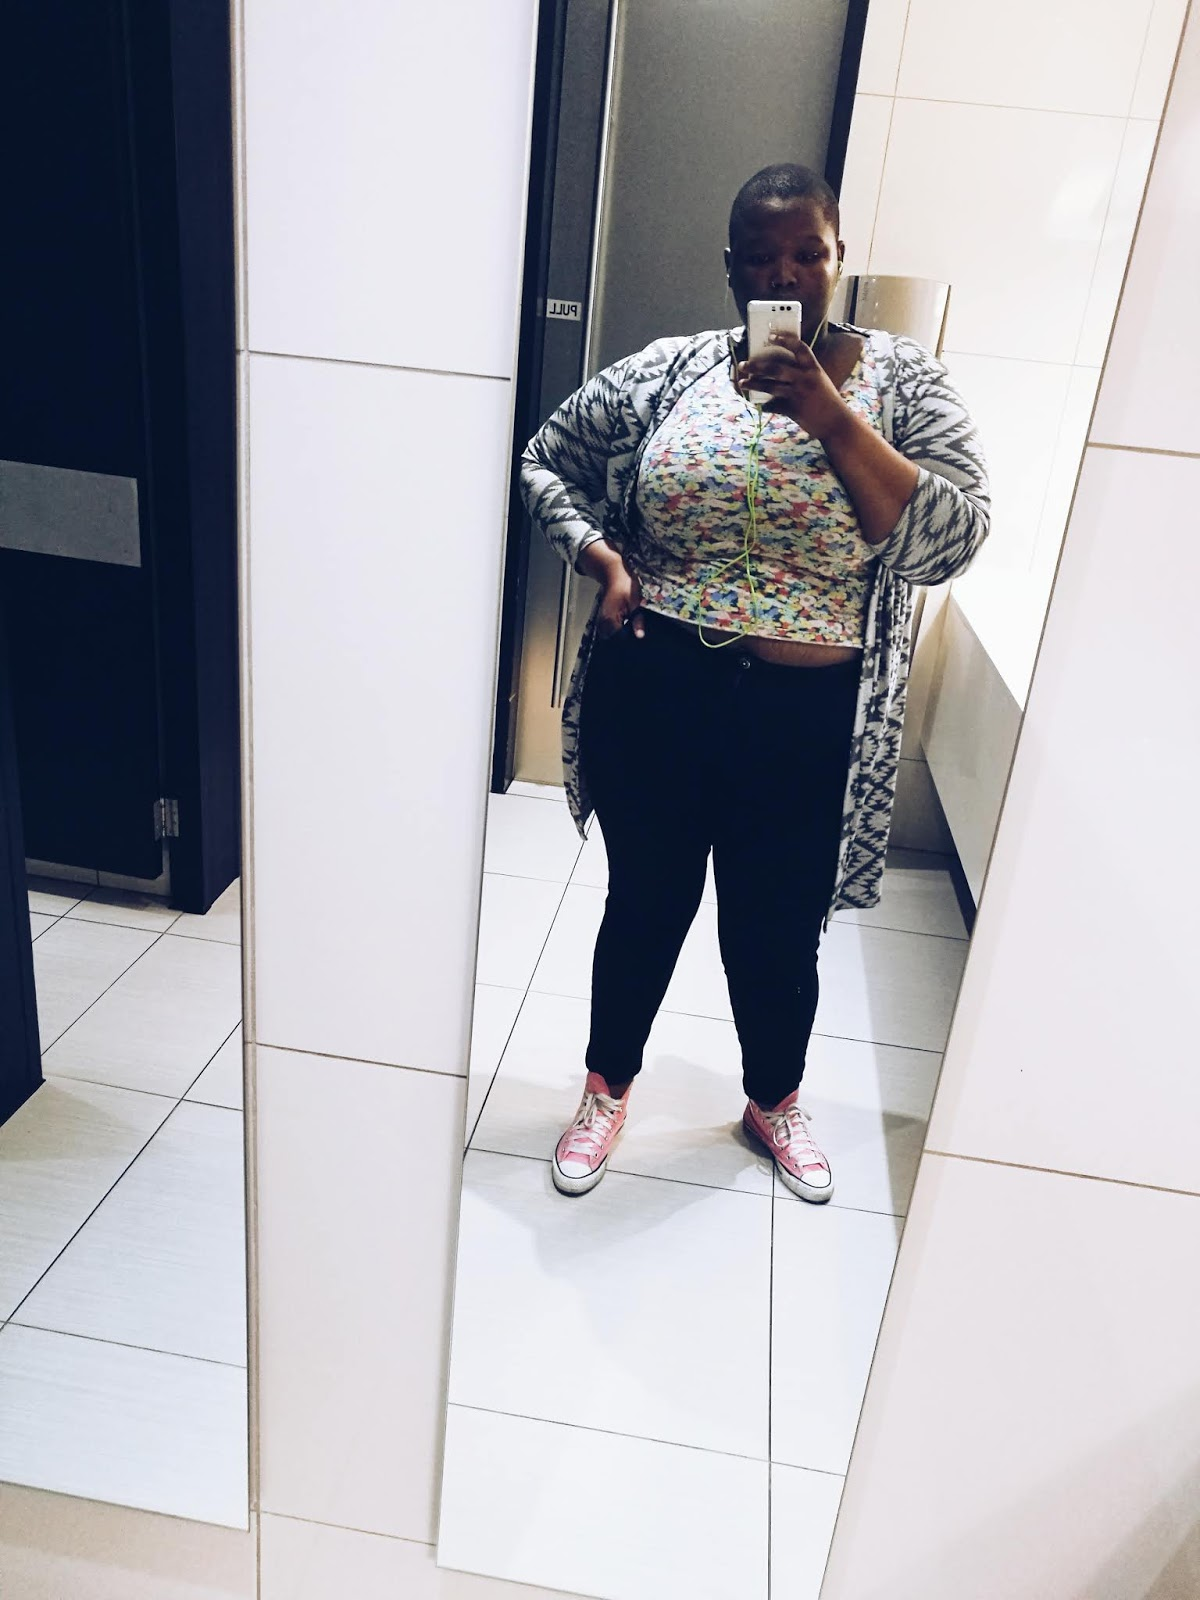 plus size dating 2018